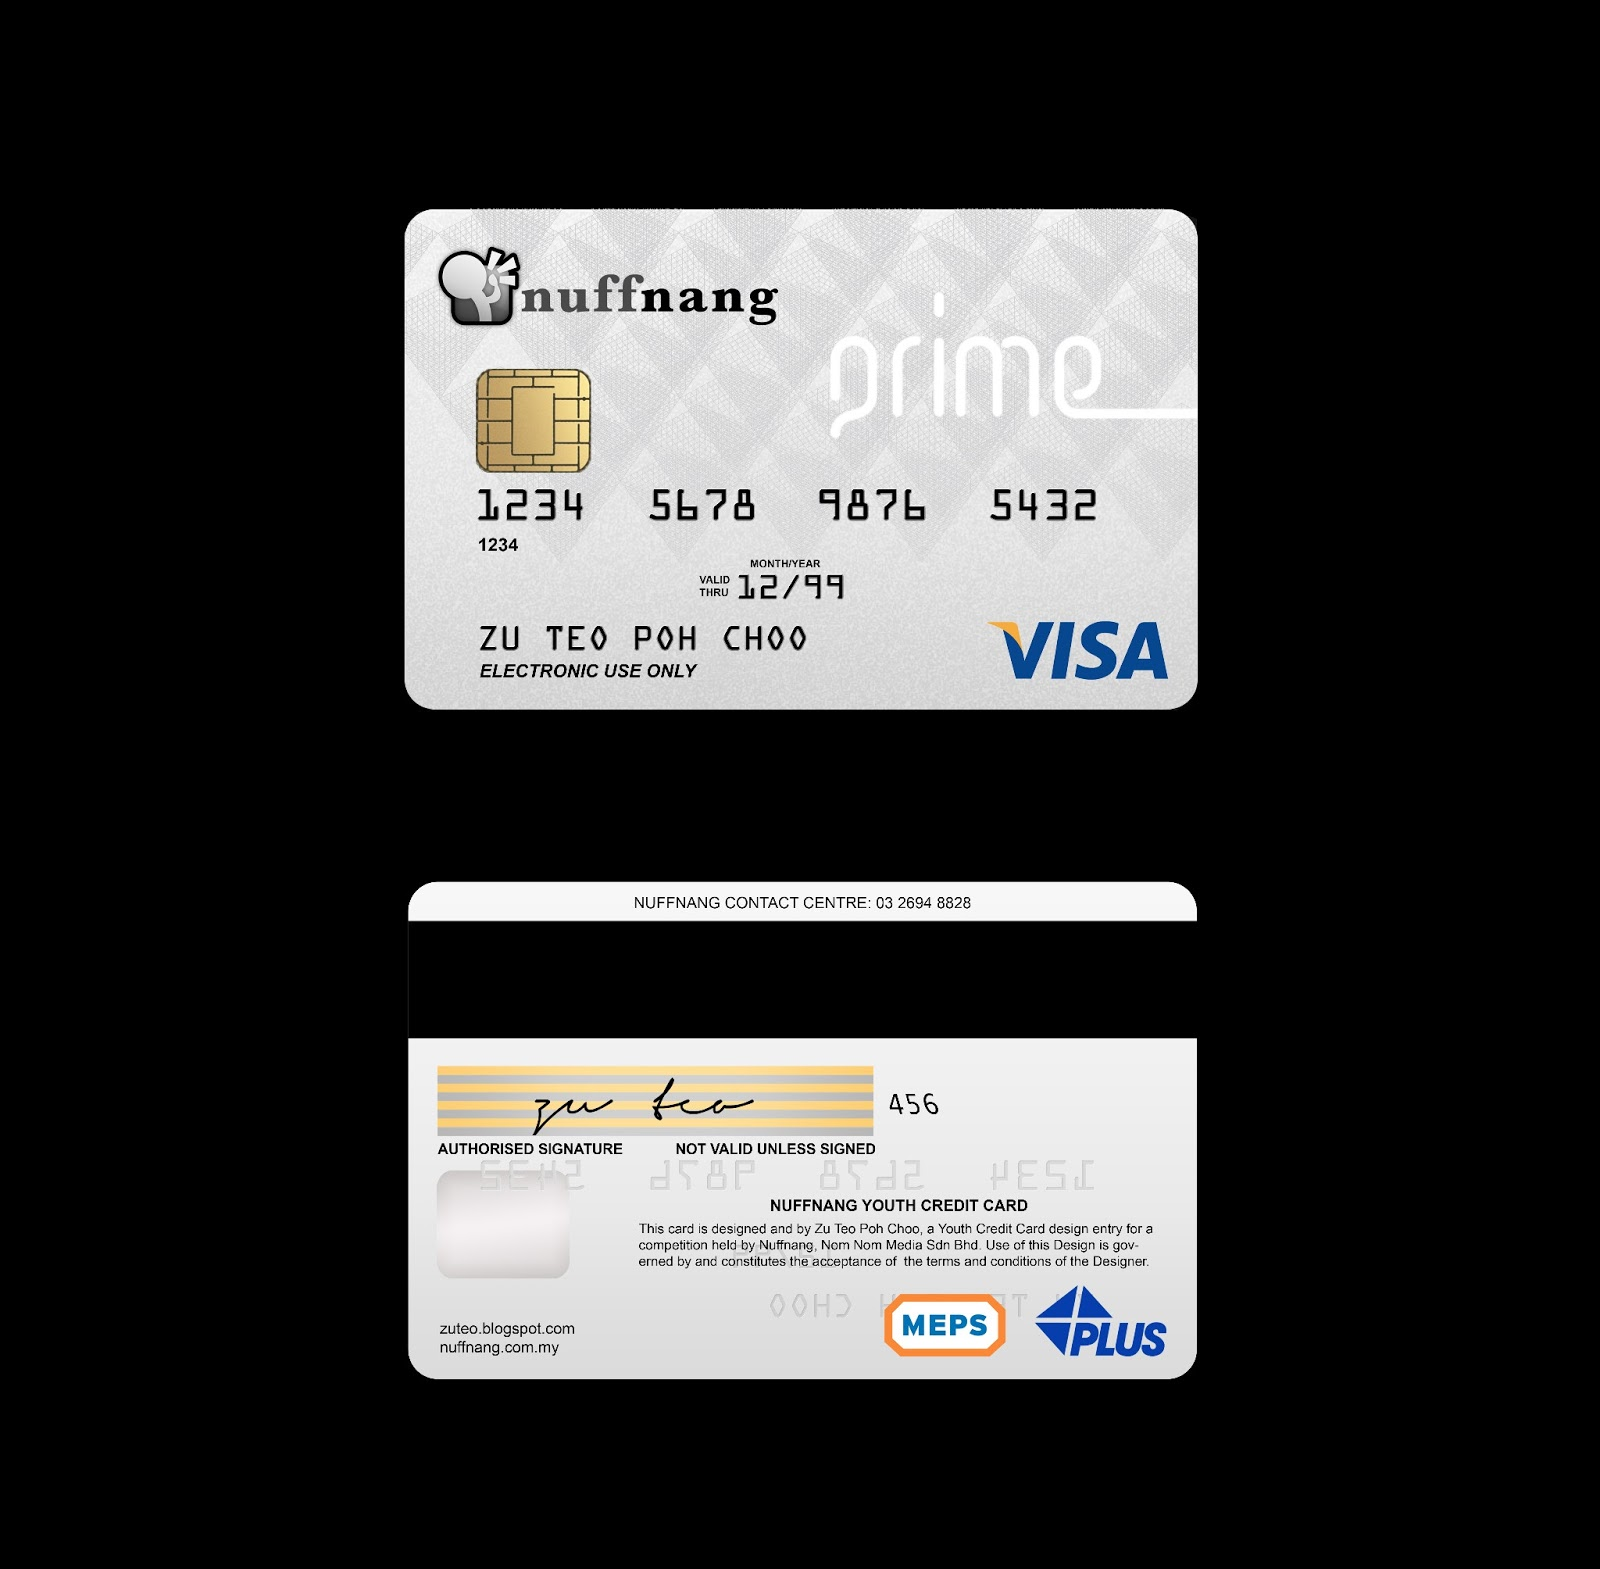 Real Visa Credit Card Numbers Front And Back I'm awesome like that....